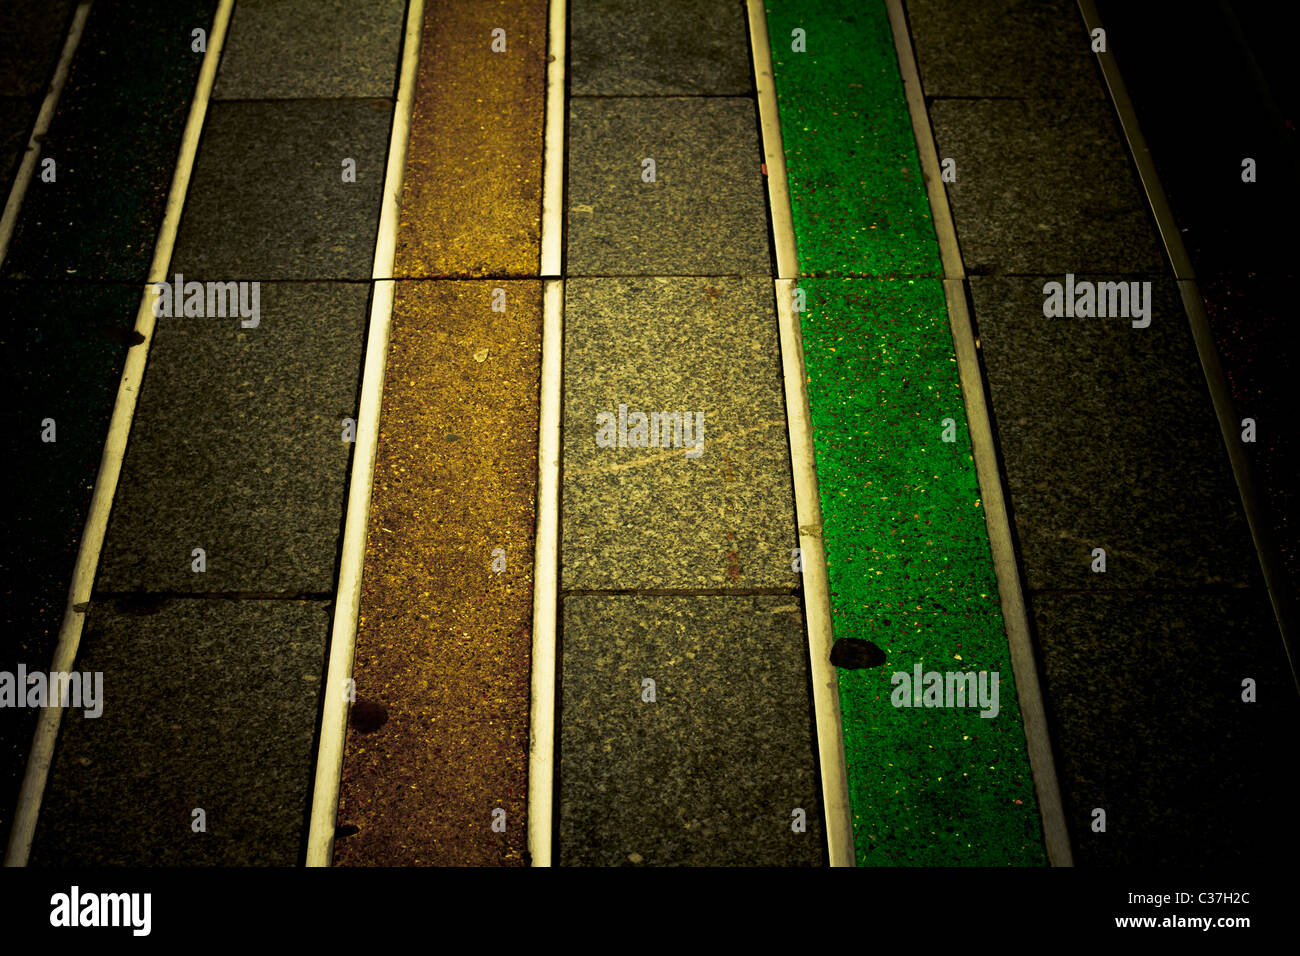 Coloured line pattern on the pavement. Abstract. - Stock Image